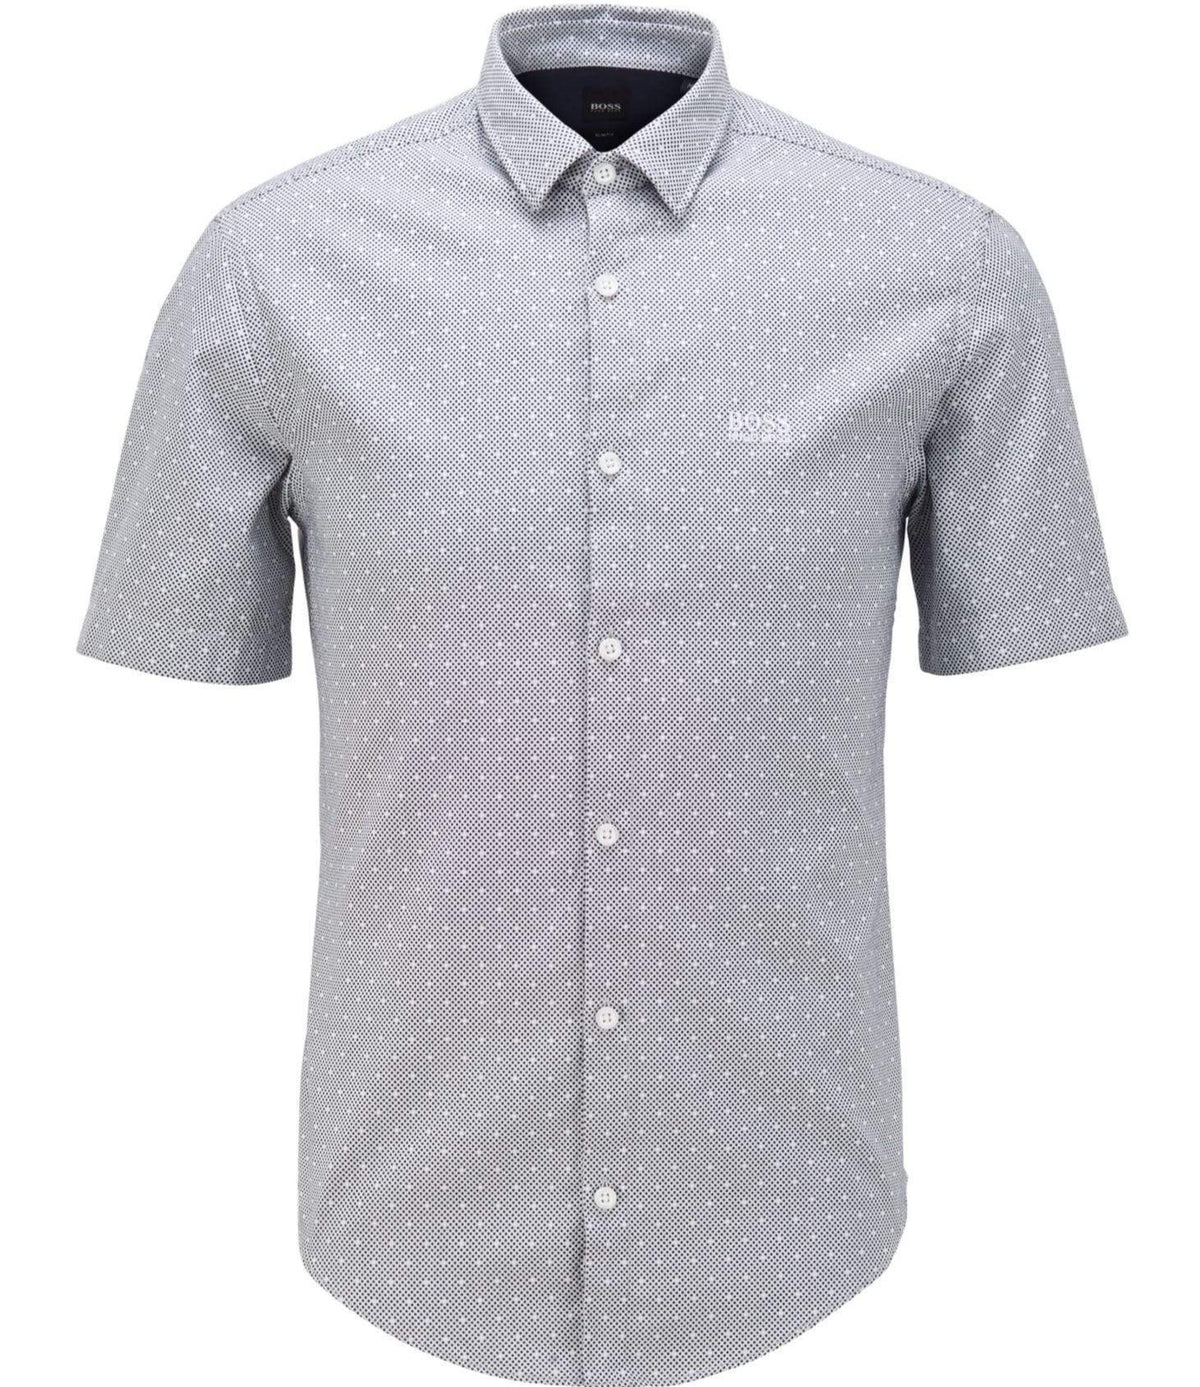 BOSS Slim-Fit Shirt In Two-Tone Dobby Cotton